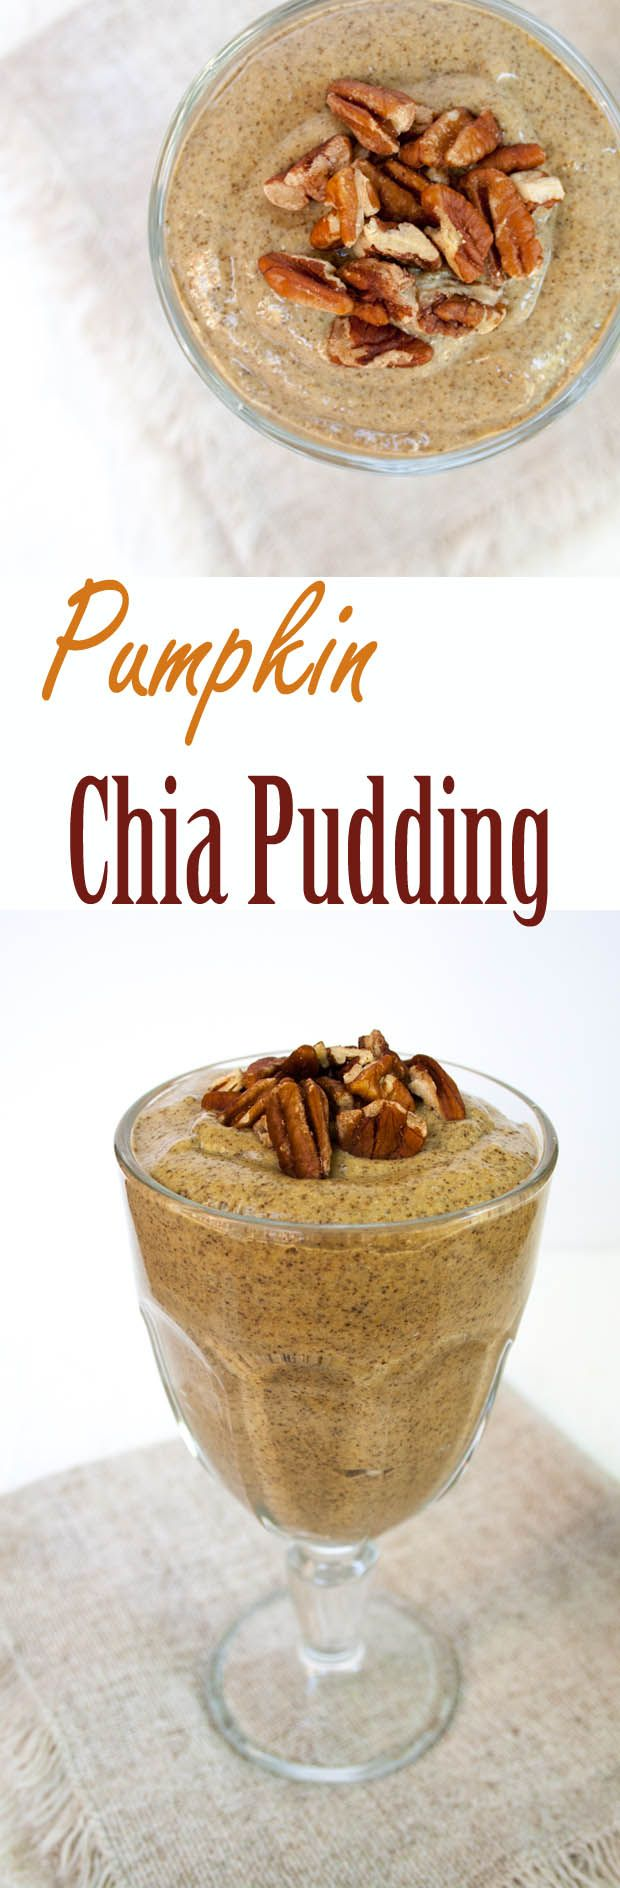 Pumpkin Chia Pudding (vegan, gluten free, sugar free) -This smooth and creamy pudding is not only easy to make, but is healthy enough to be eaten for breakfast. Recipe is now on the blog. Link in bio. #vegan #glutenfree